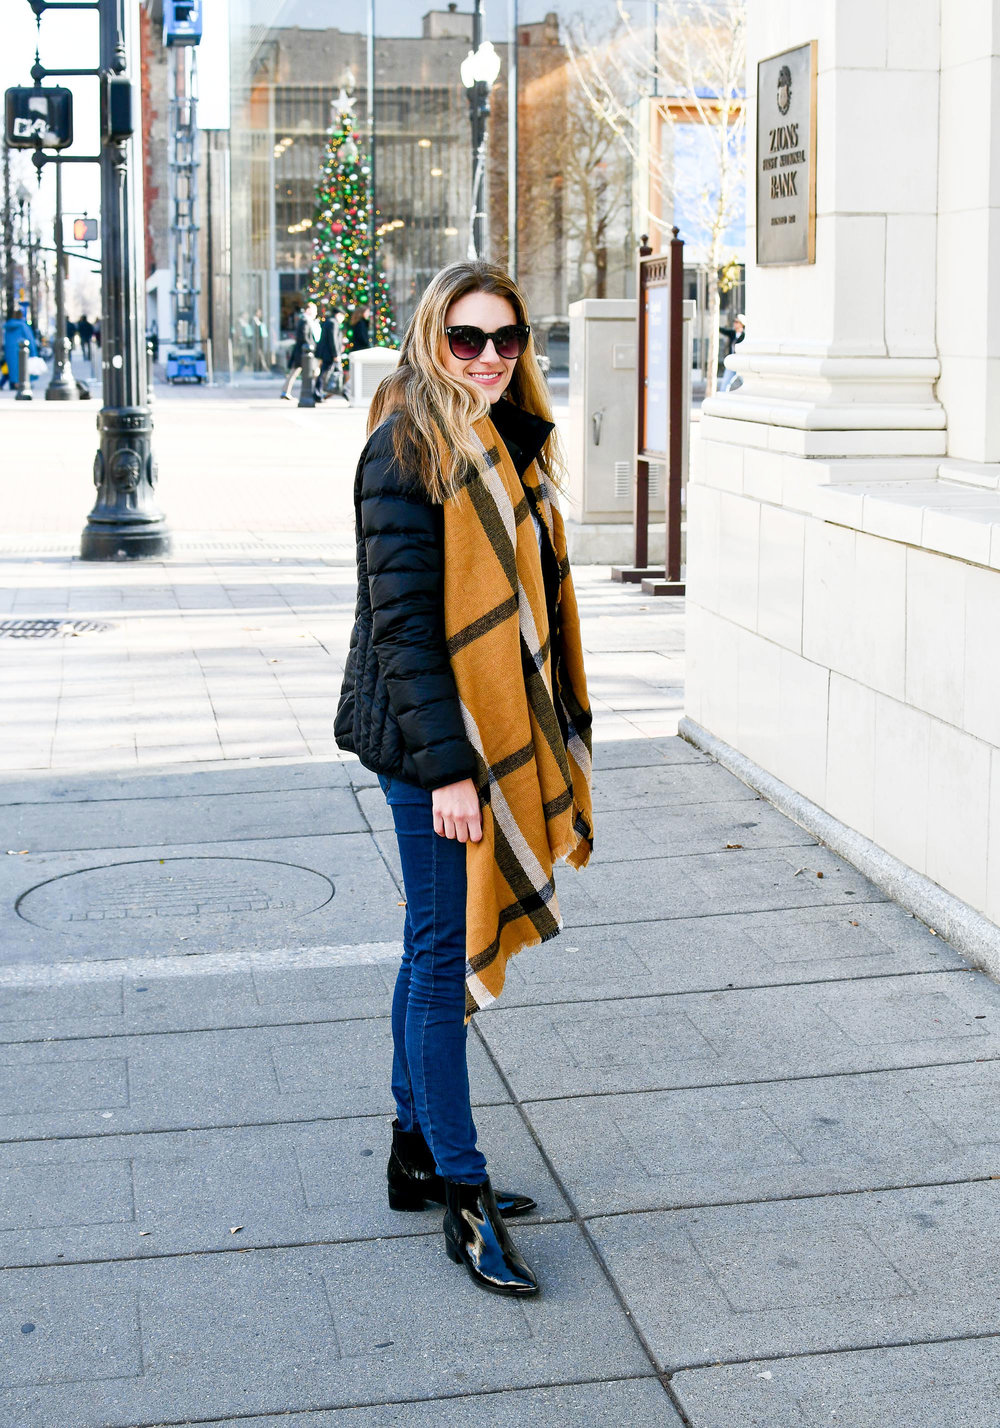 Winter outfit with packable puffer coat — Cotton Cashmere Cat Hair